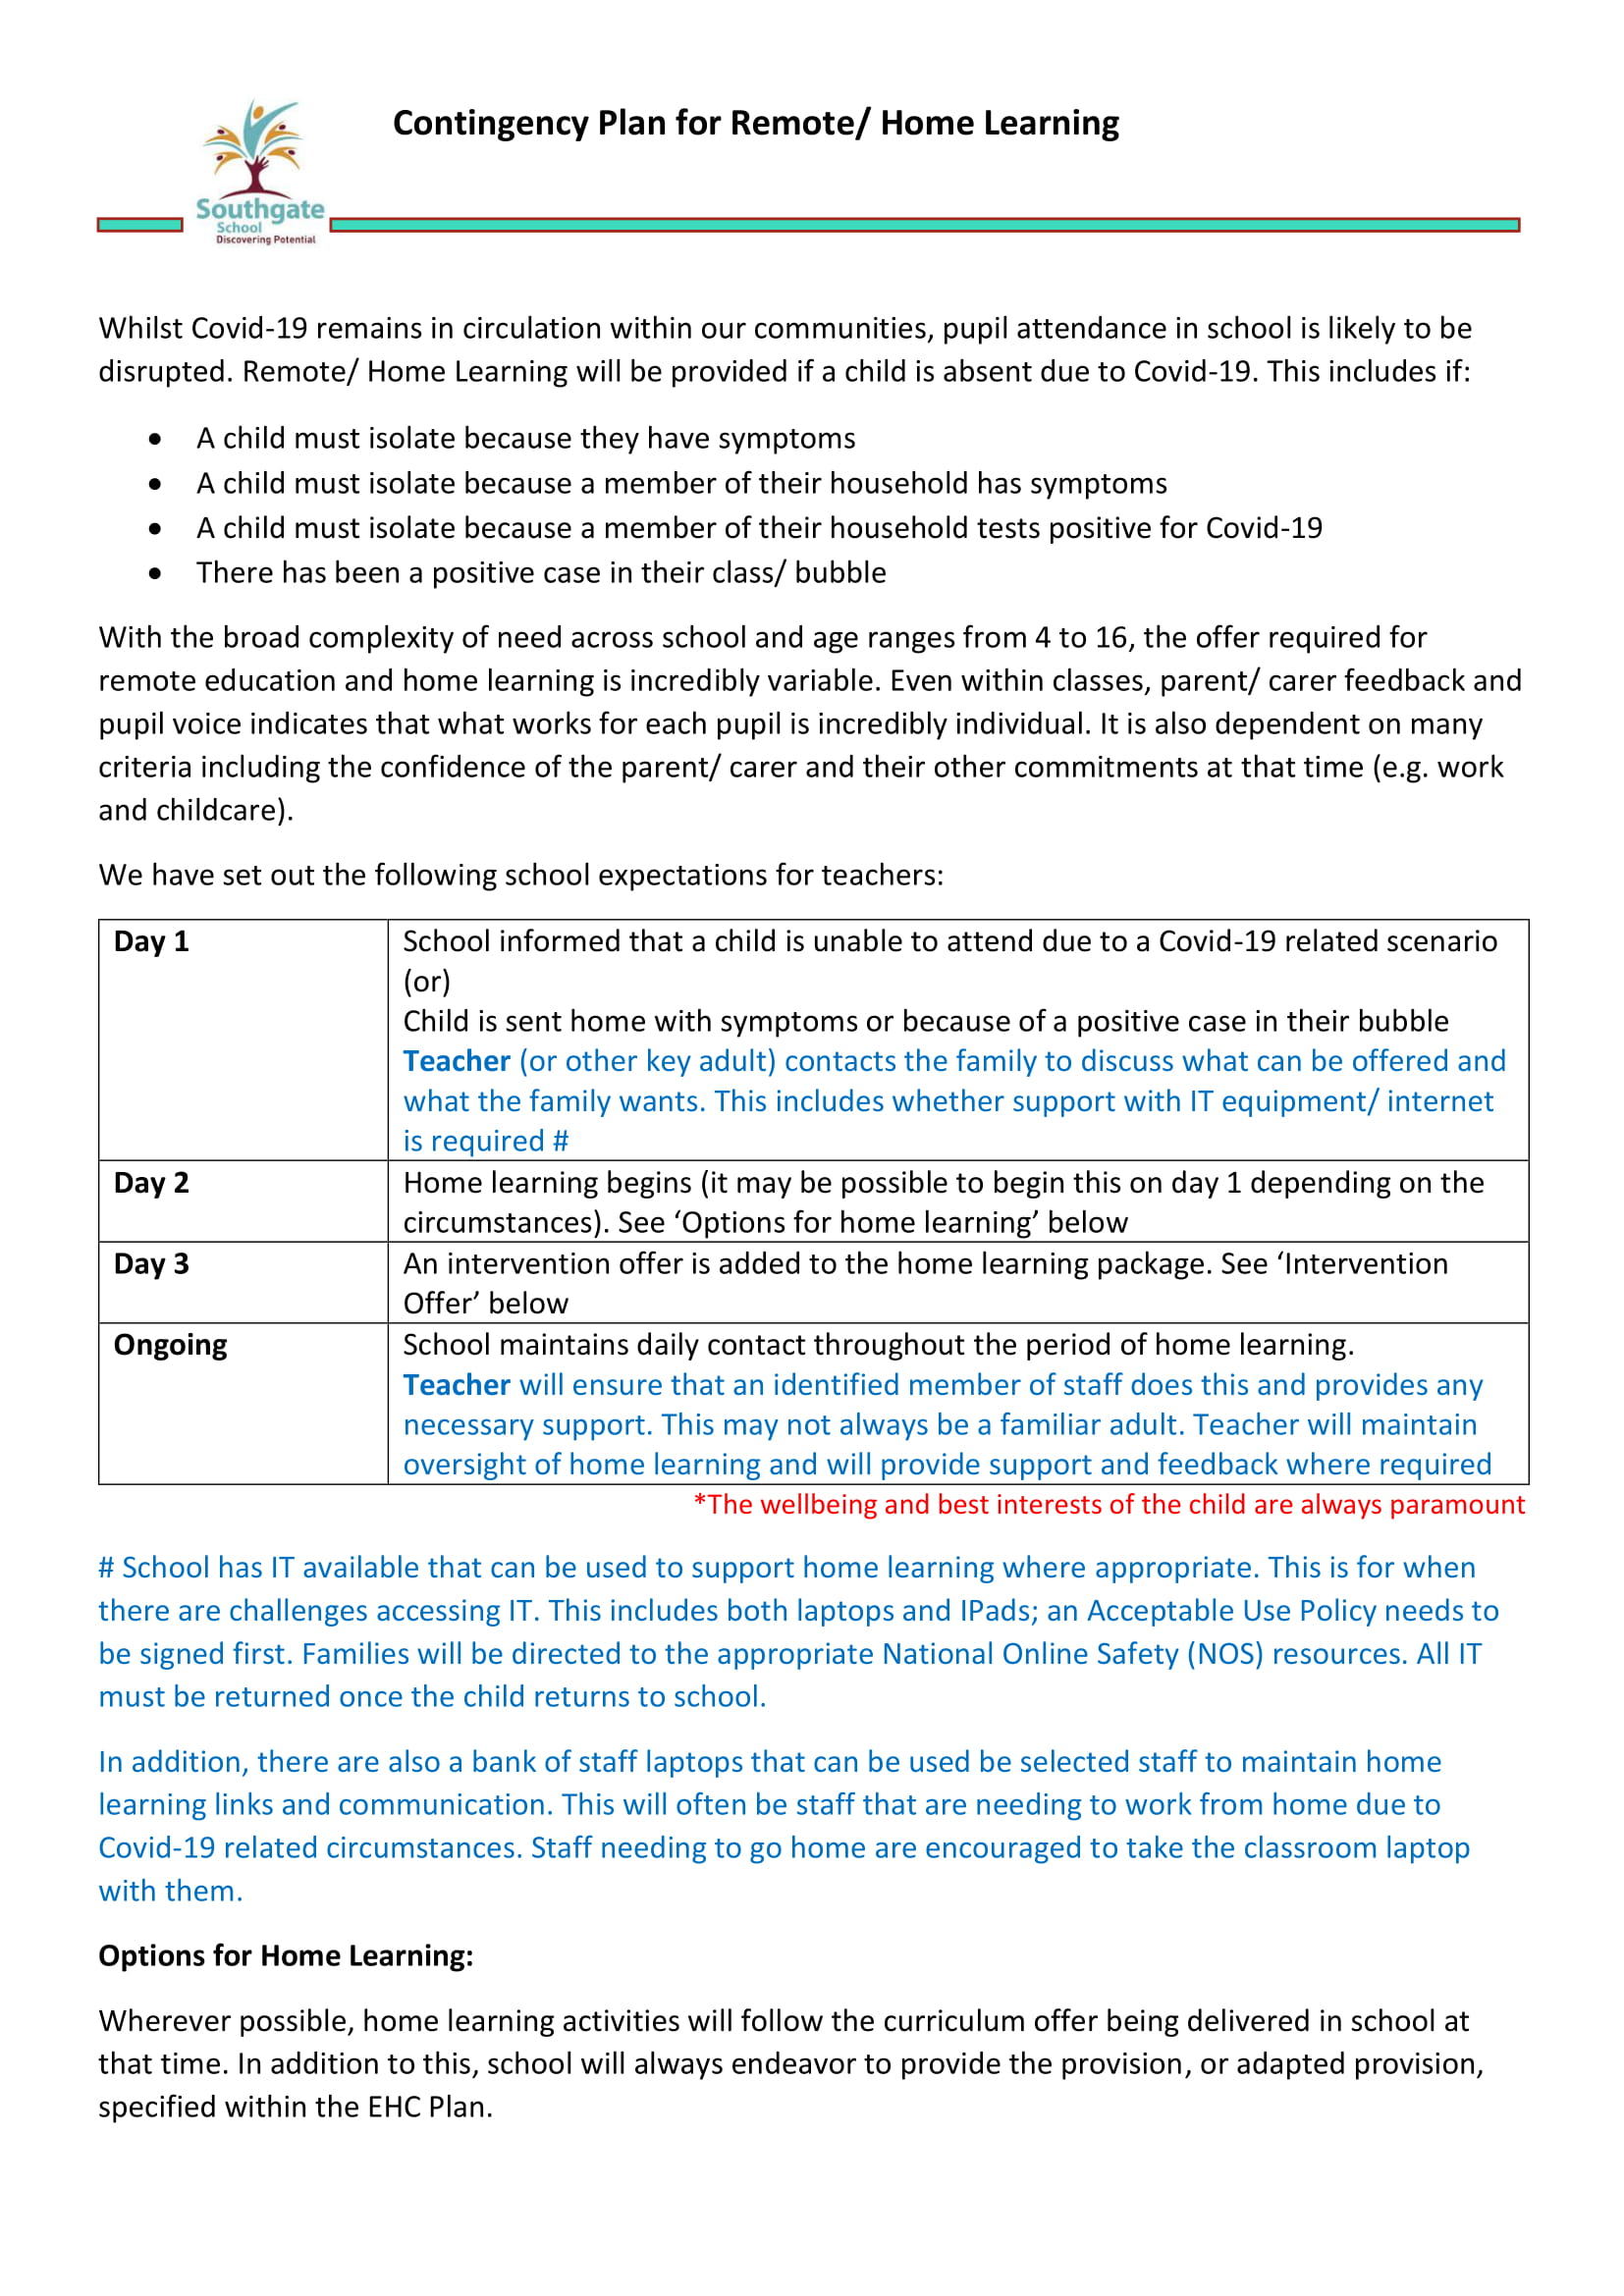 Contingency Plan for Remote Education and Home Learning-1